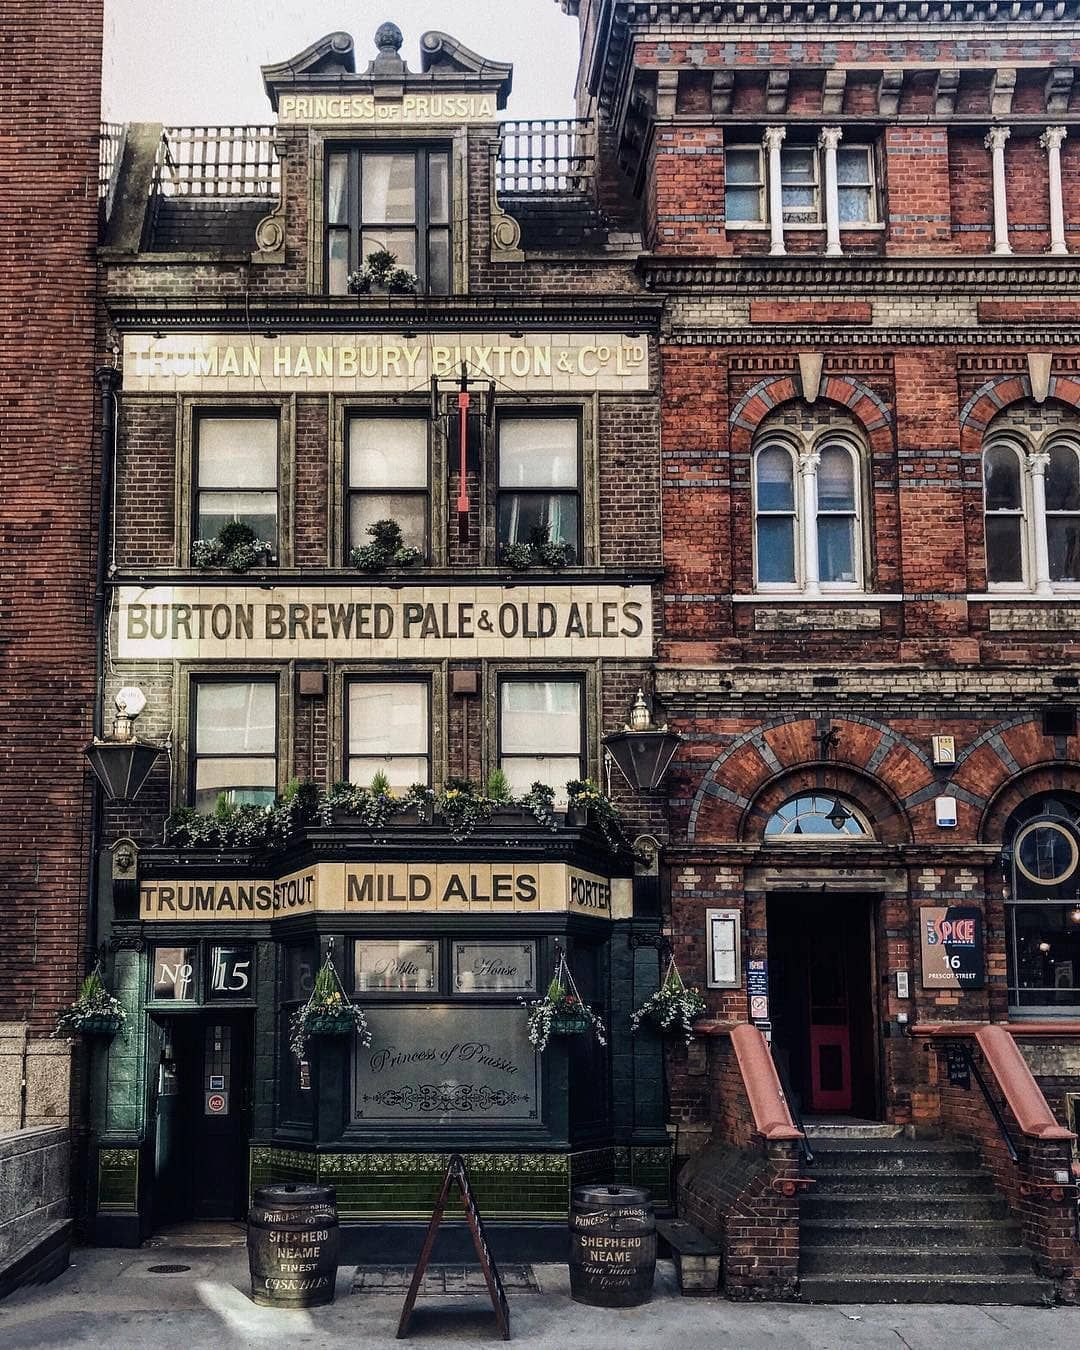 A Throwback To Victorian London In The Heart Of Whitechapel The Princess Of Prussia Pub Is A Proper East End Gem London Buildings London Pubs London Photos